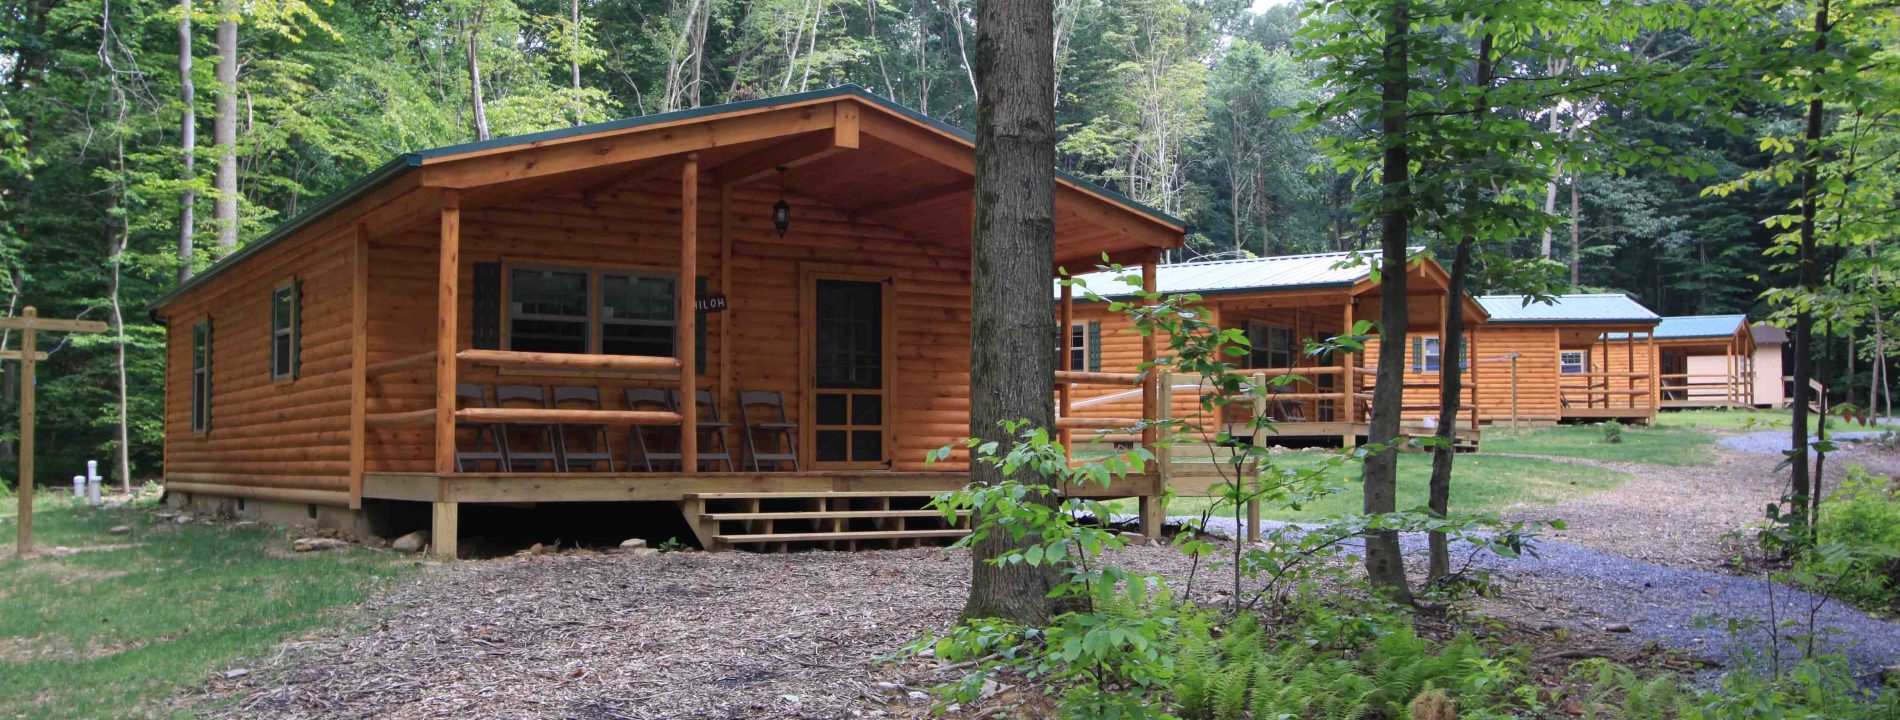 camp cabins for sale